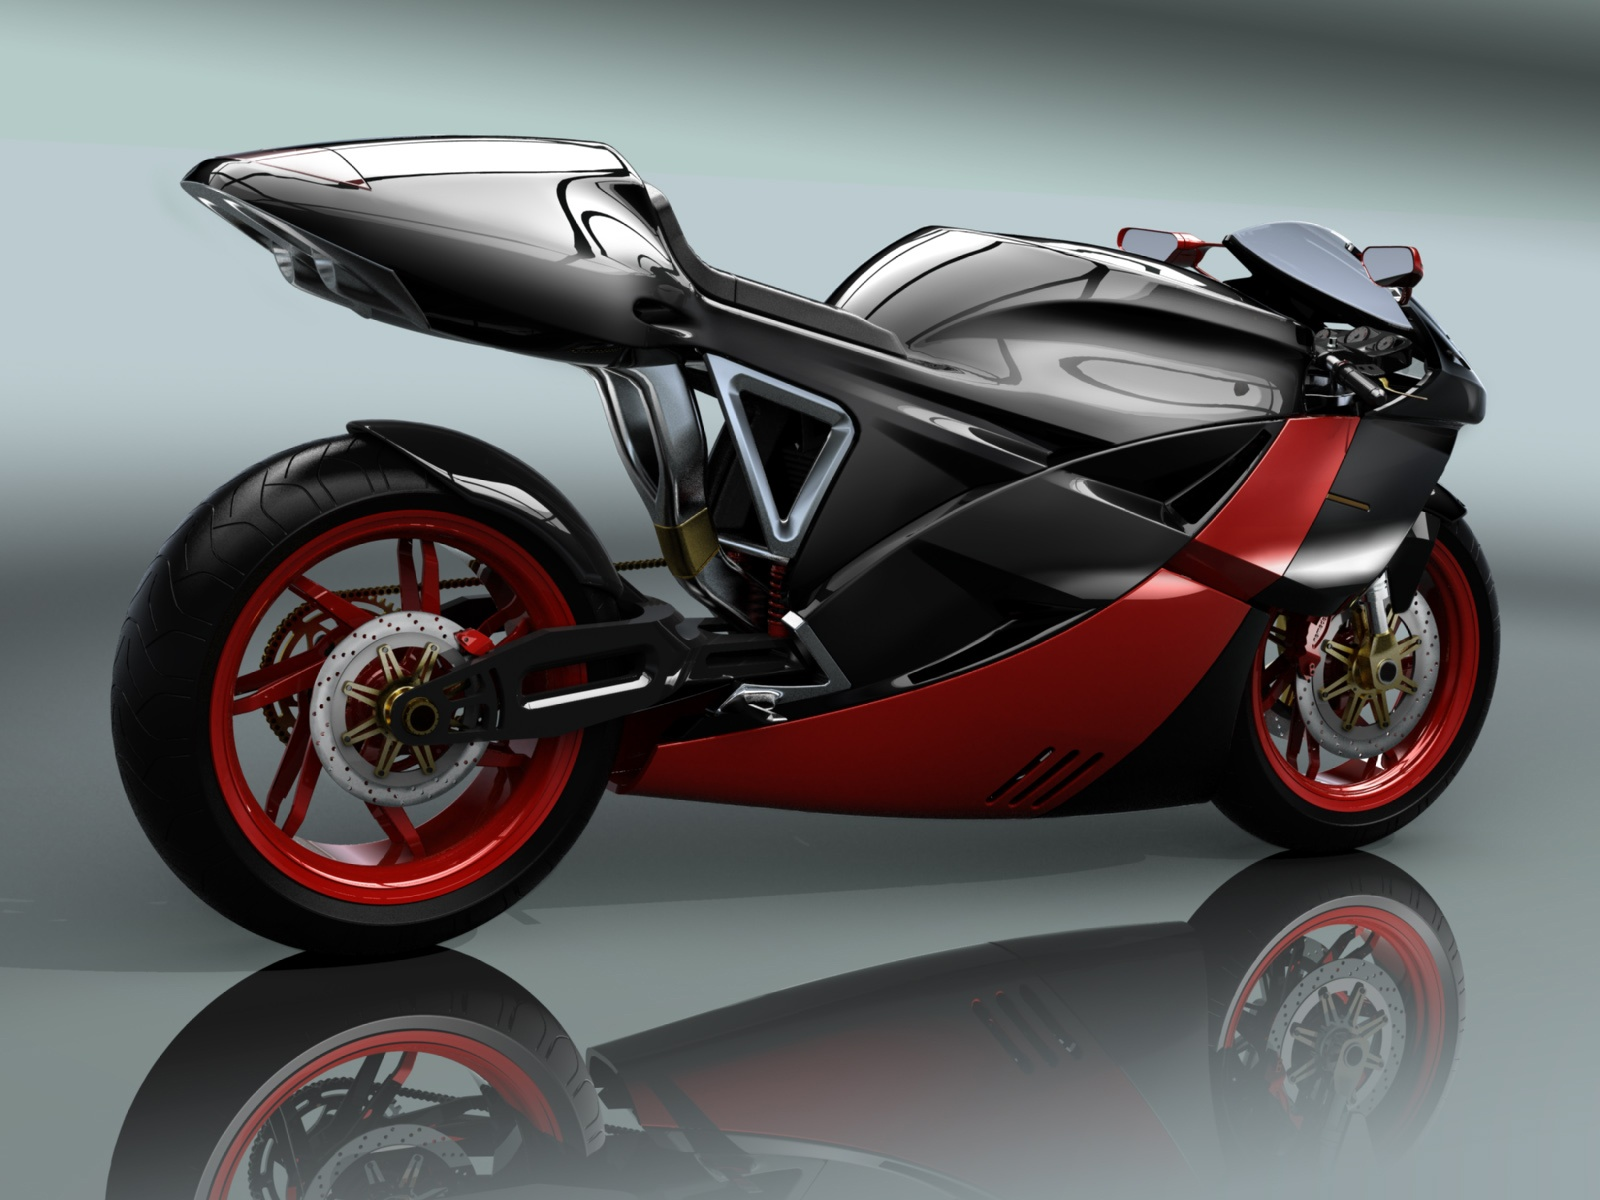 super bike concept wallpapers in jpg format for free download